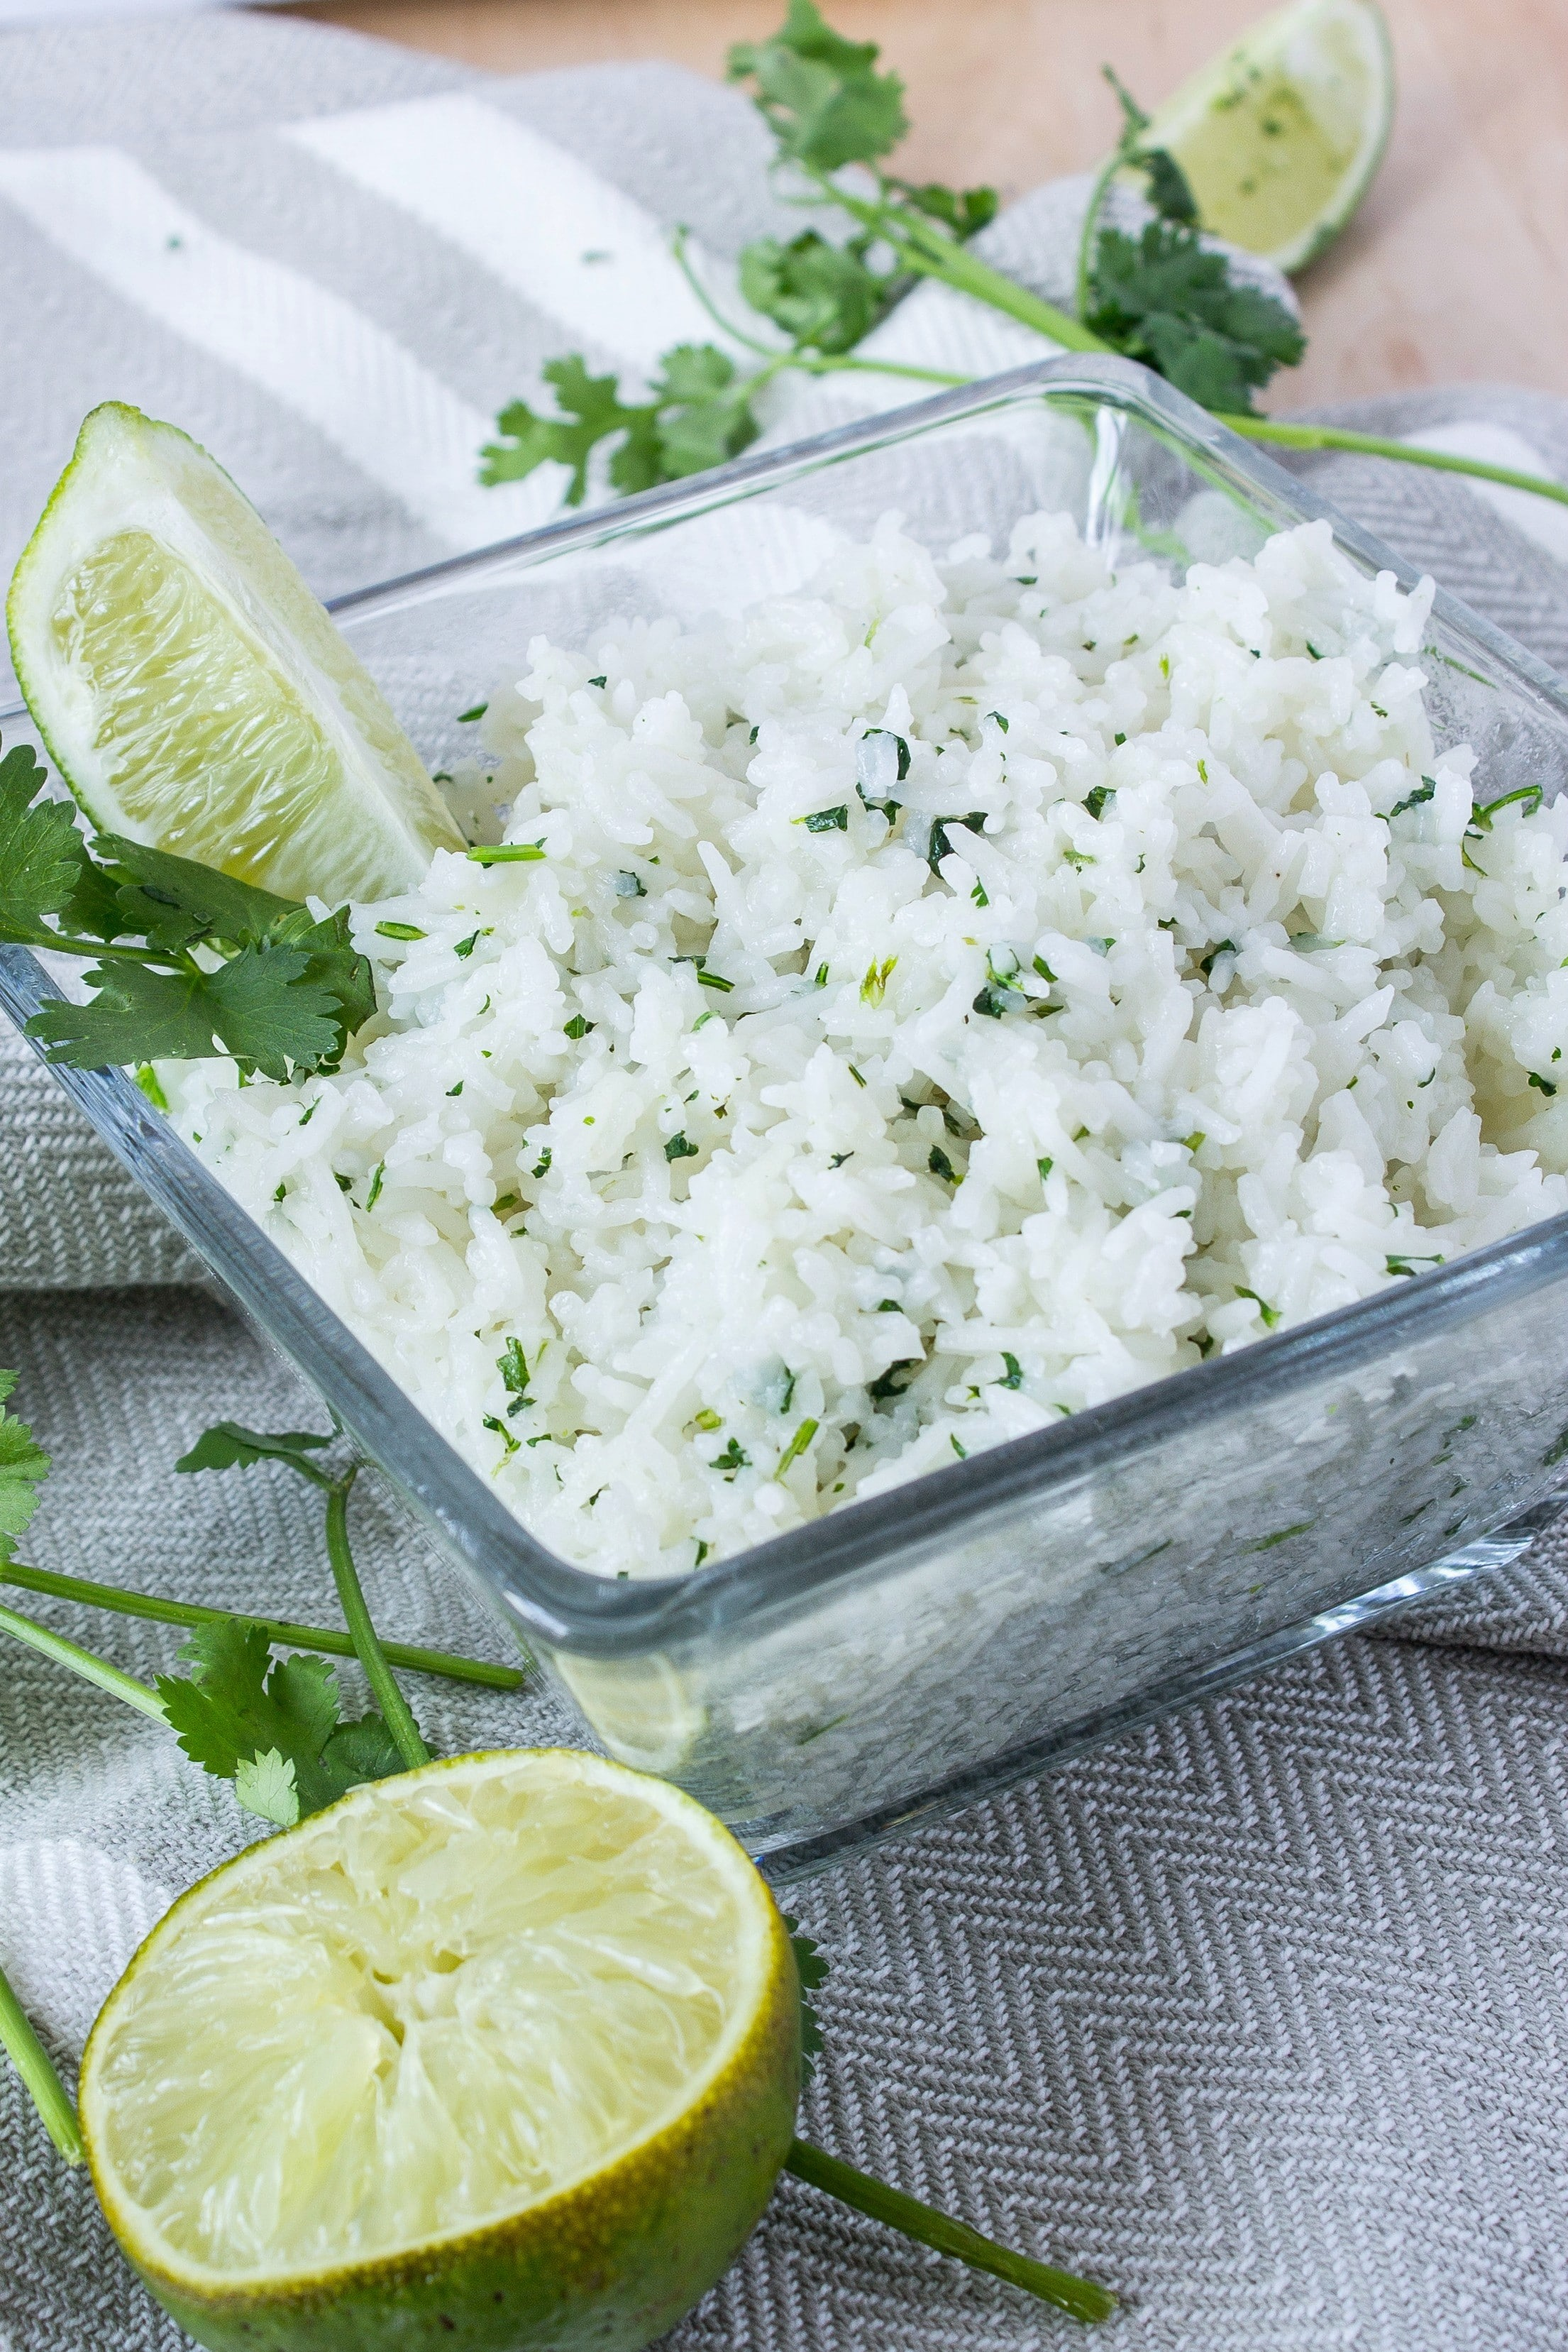 Cilantro lime rice. Just like the rice at Chipotle but now you can make it home!